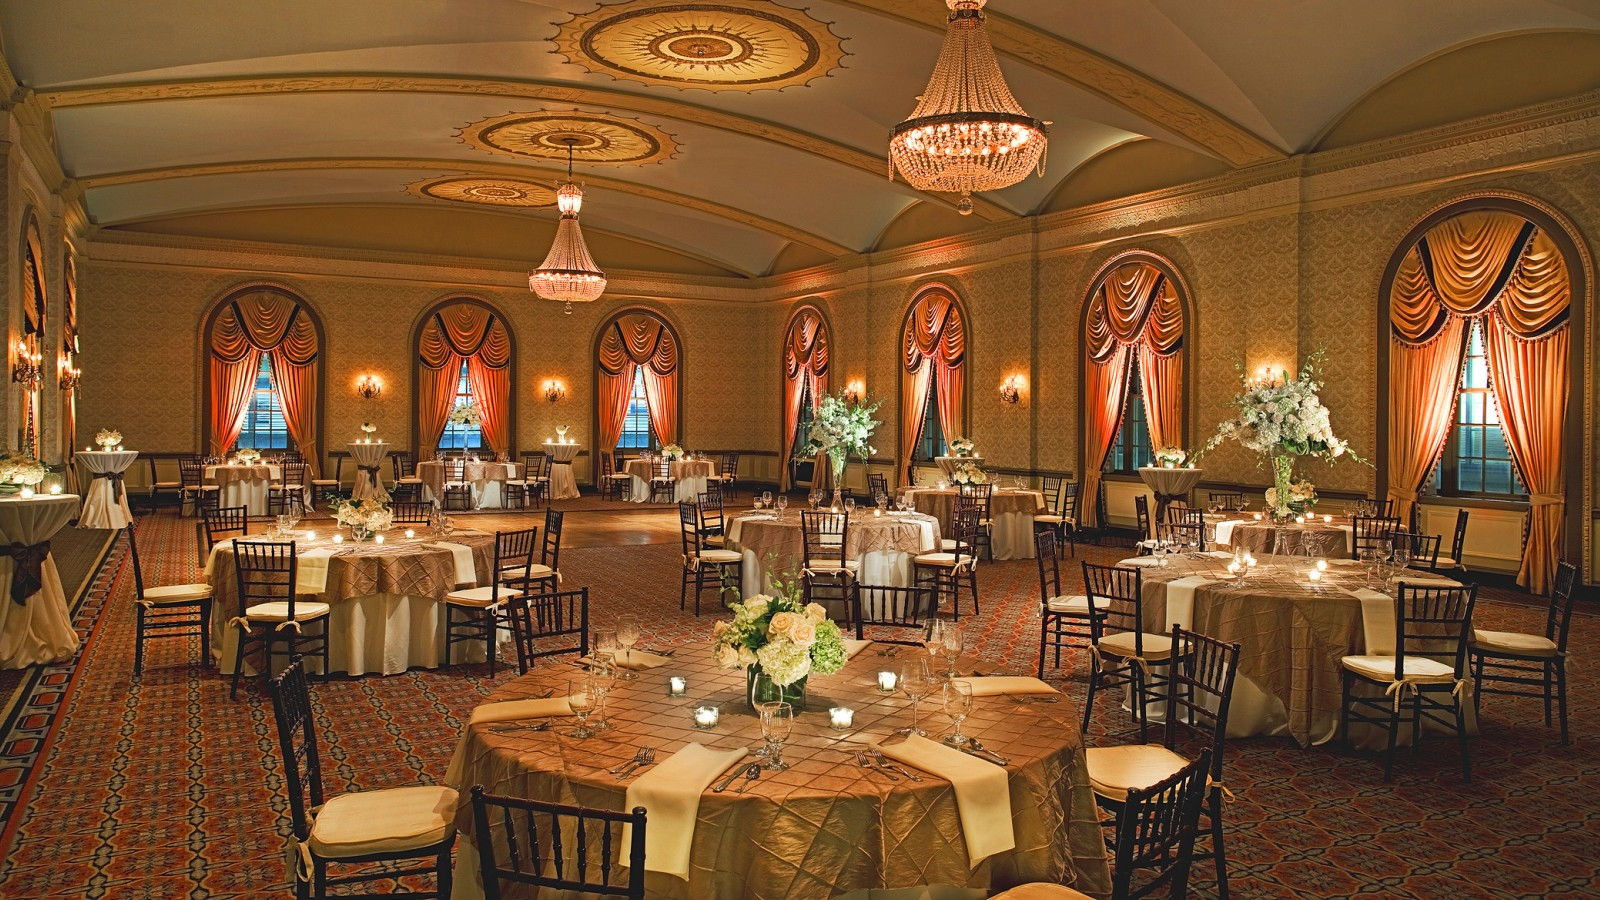 The Westin Poinsett, Greenville - Gold Ballroom